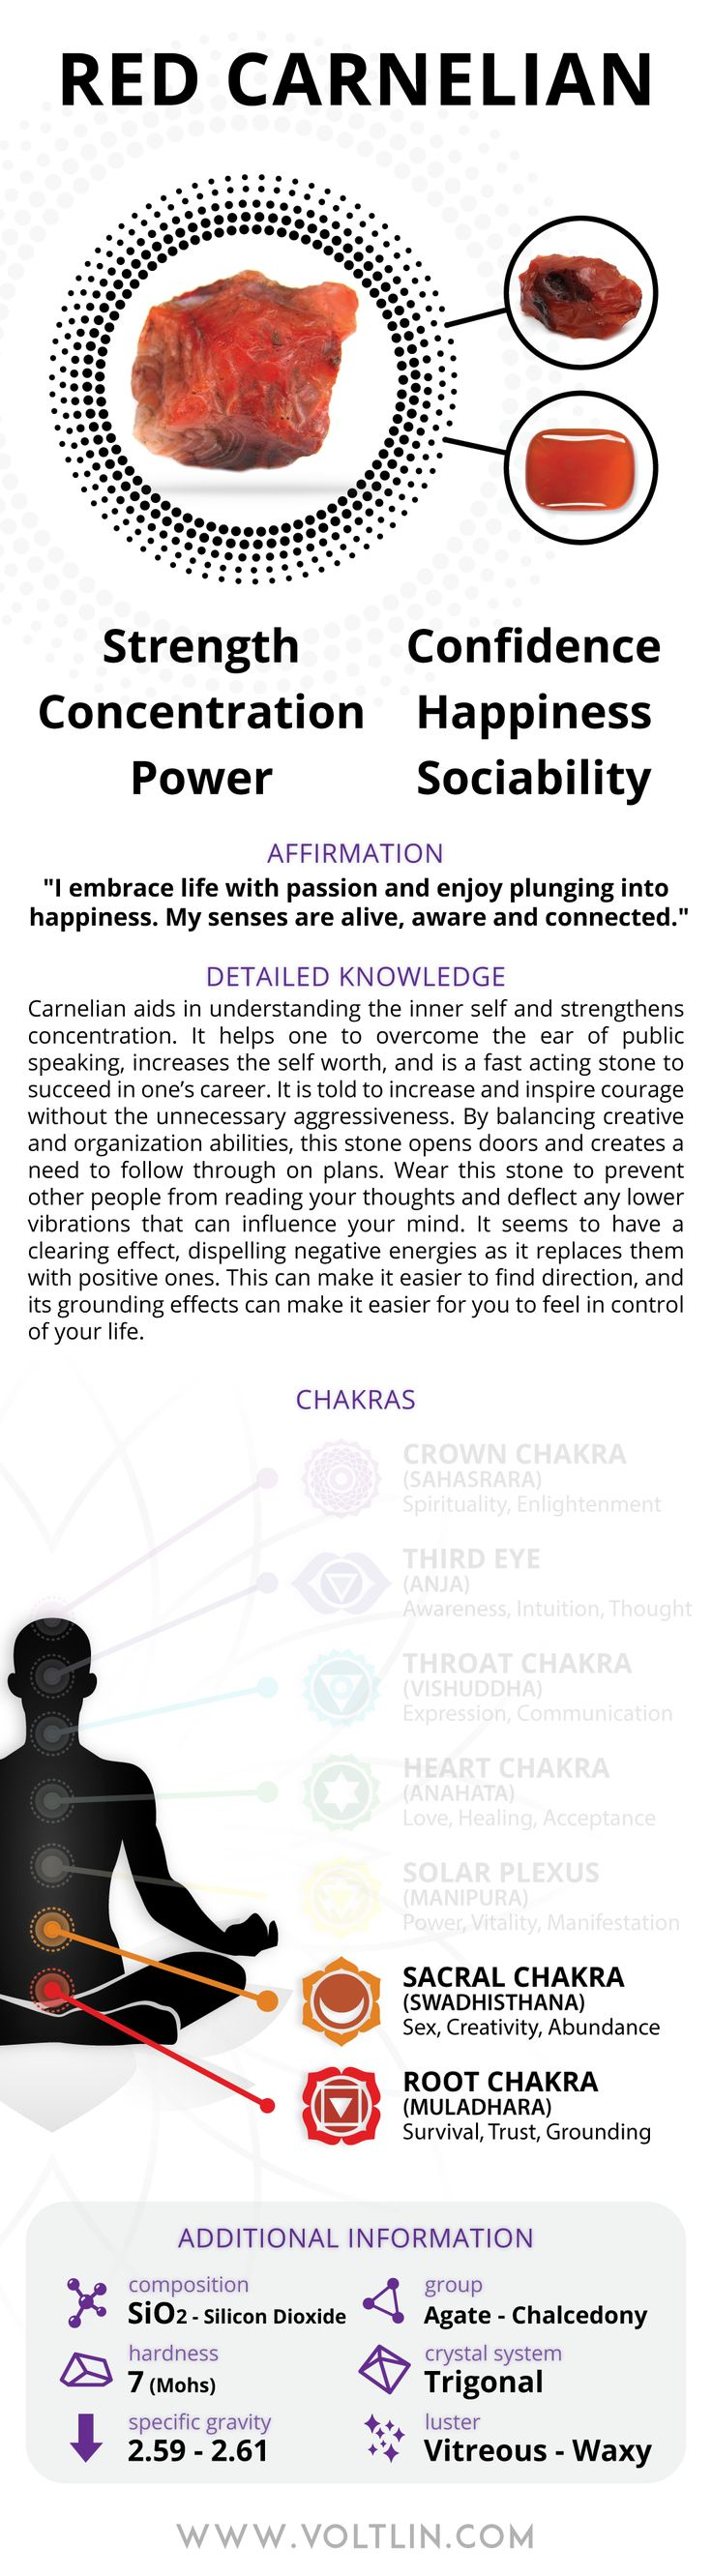 Description Carnelian aids in understanding the inner self and strengthens concentration. It helps one to overcome the fear of public speaking, increases the self-worth, and is a fast acting stone to